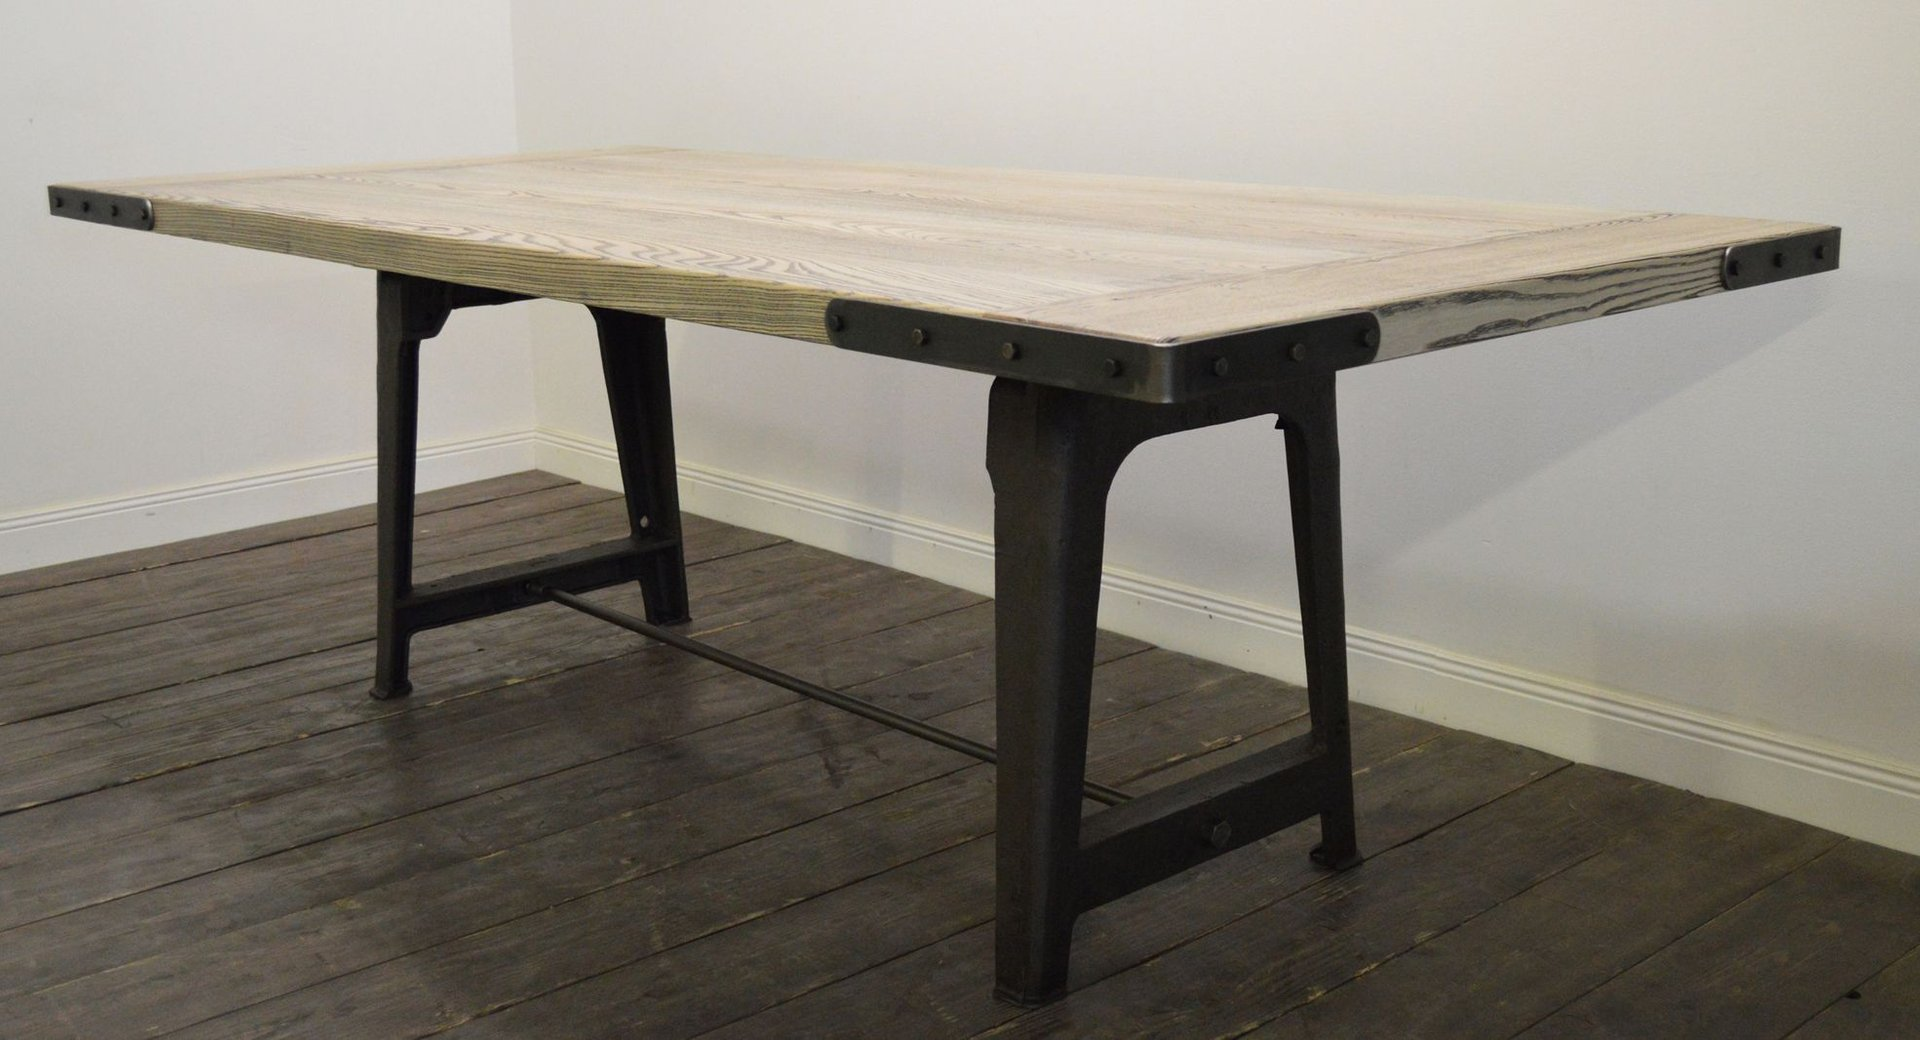 Grande table de salle manger industrielle en fr ne en for Table originale salle manger